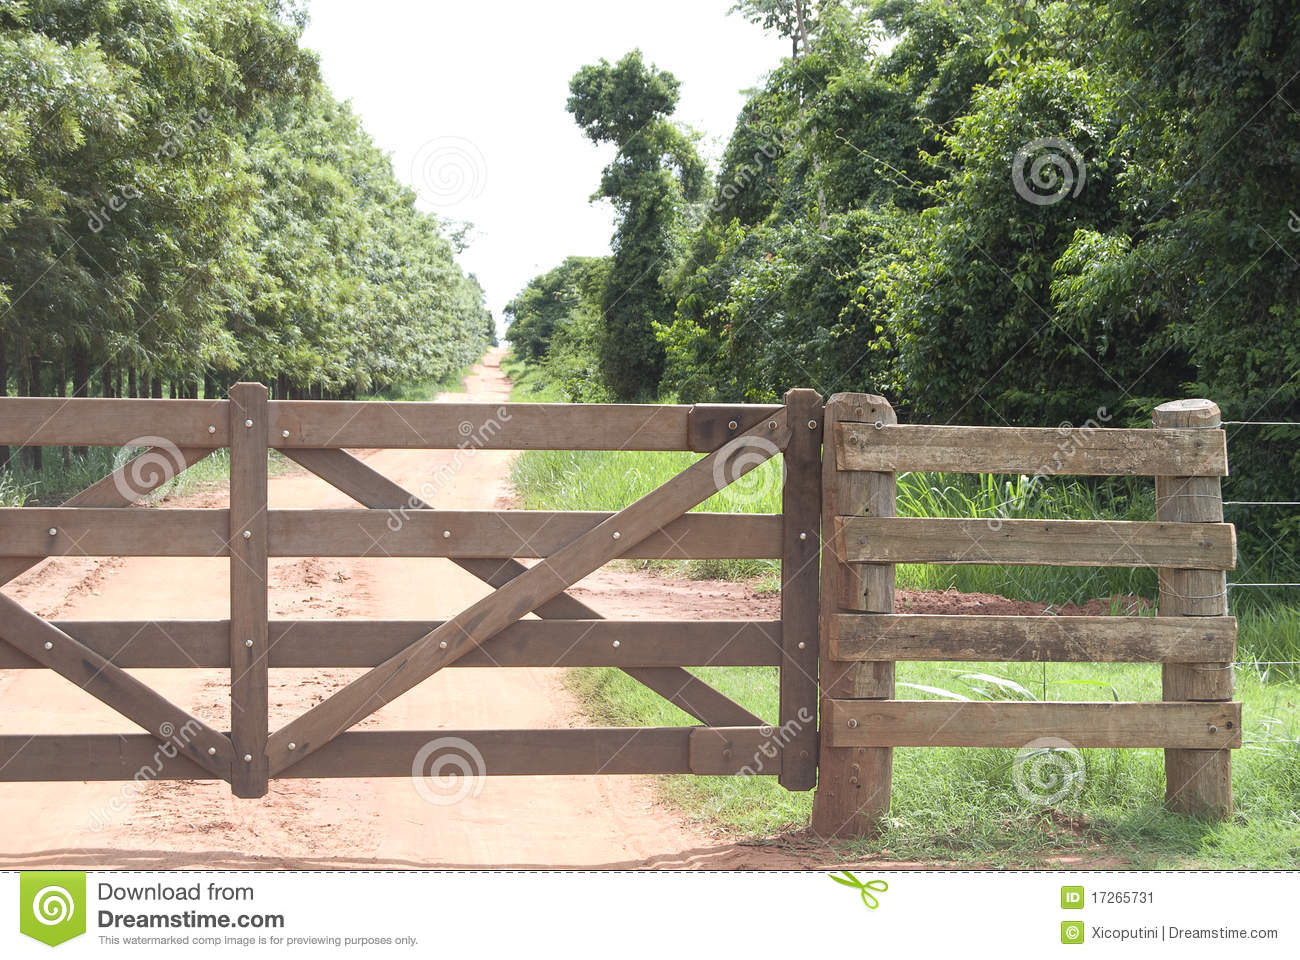 44 Rural Gate Wood Brazilian Farm Photos Free Royalty Free Stock Photos From Dreamstime